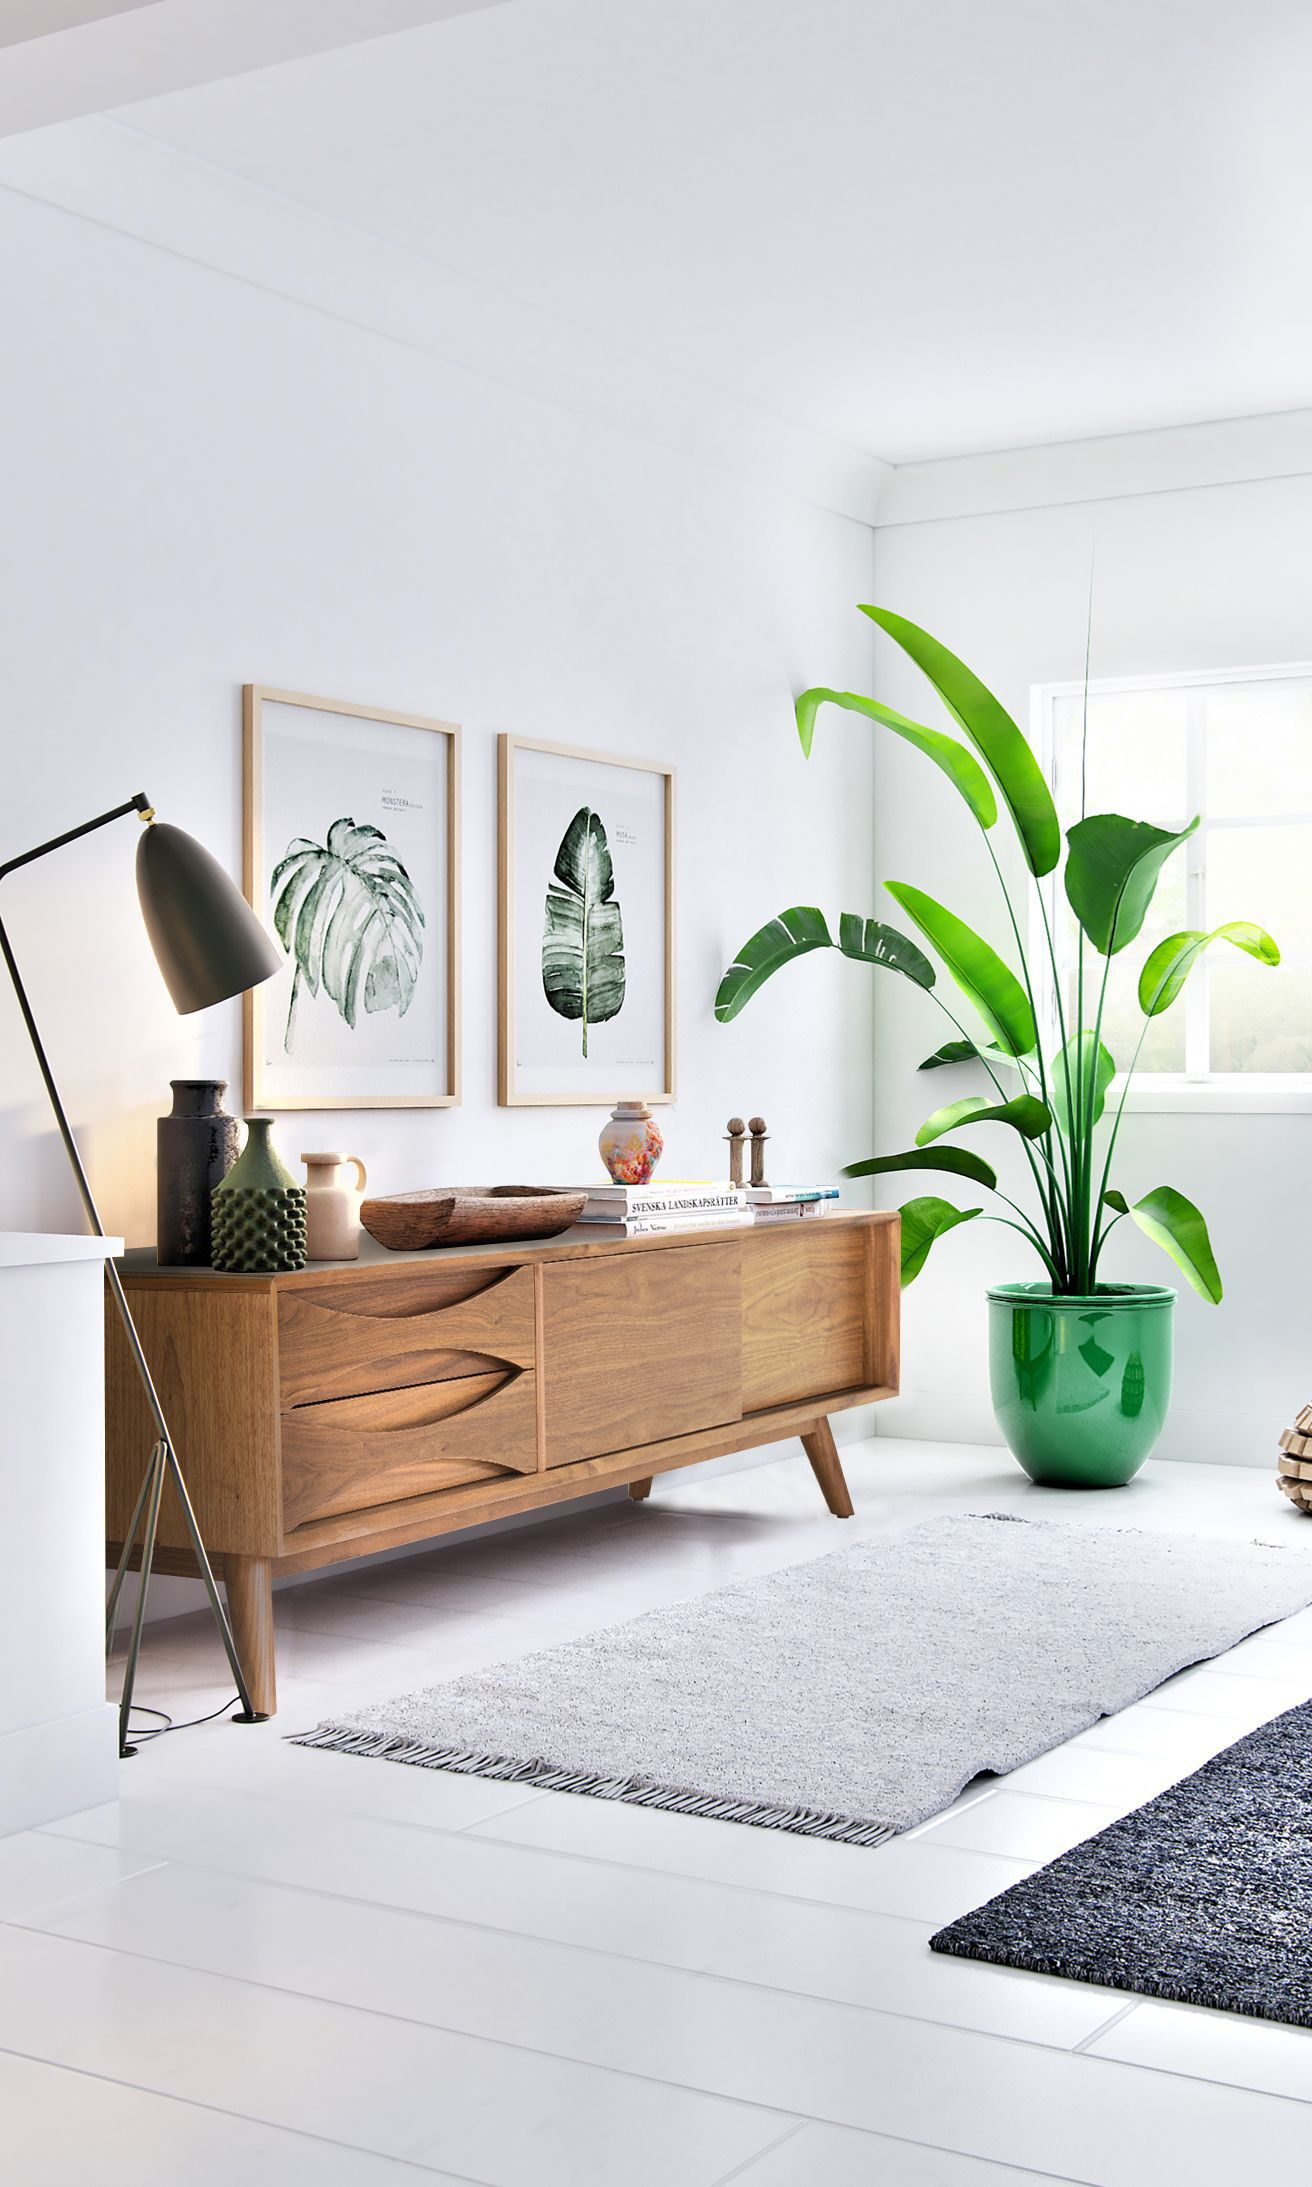 The Flemming TV Stand Is A Mid-century Modern Design. Its